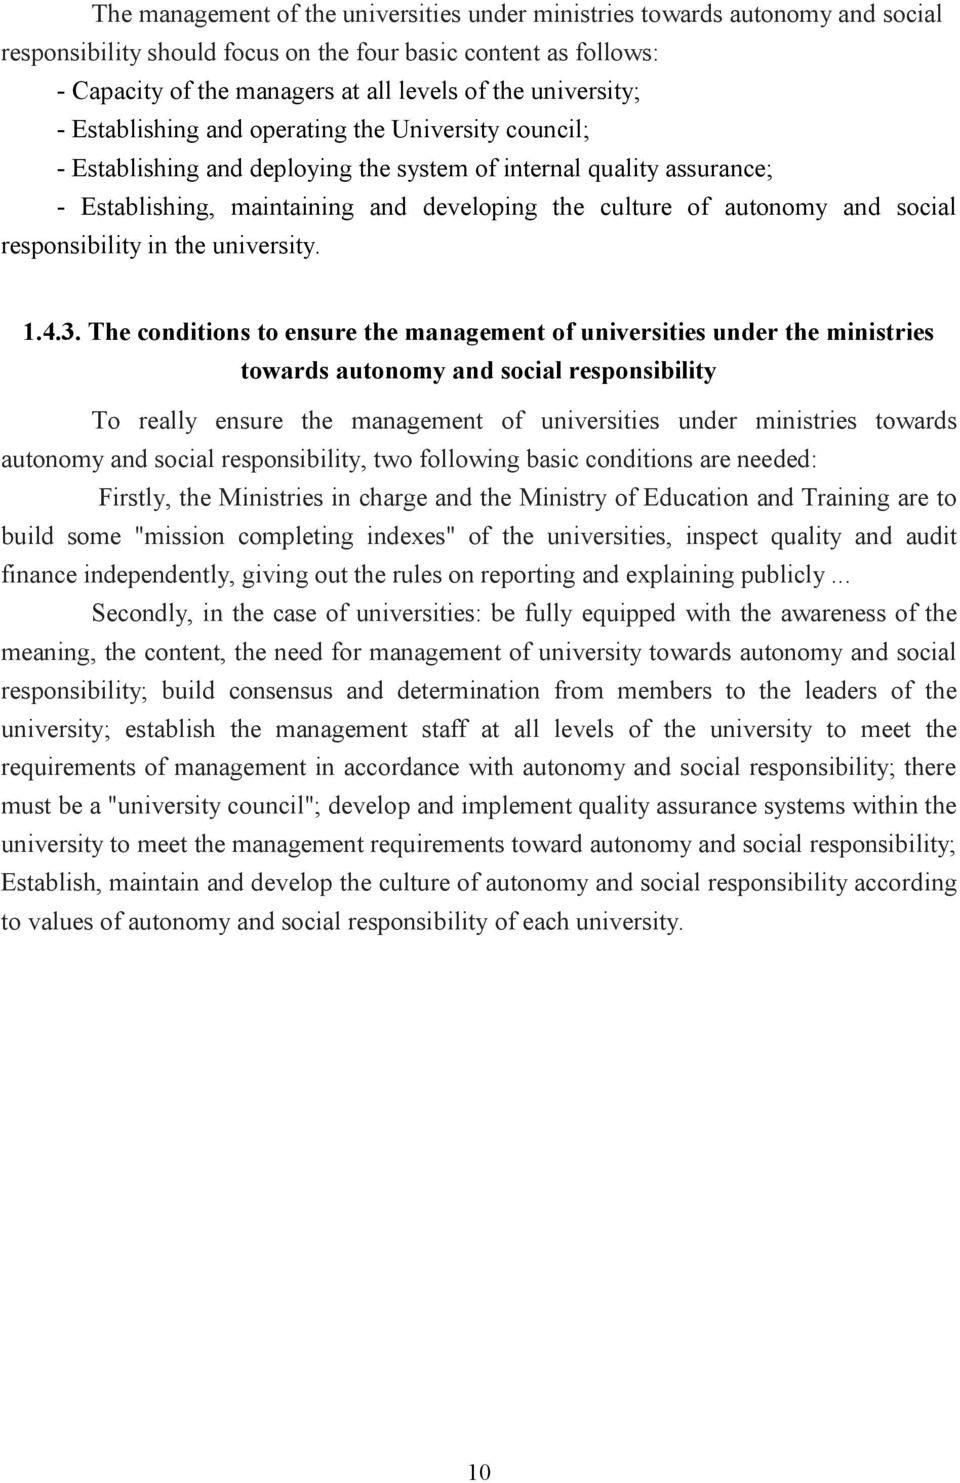 autonomy and social responsibility in the university. 1.4.3.